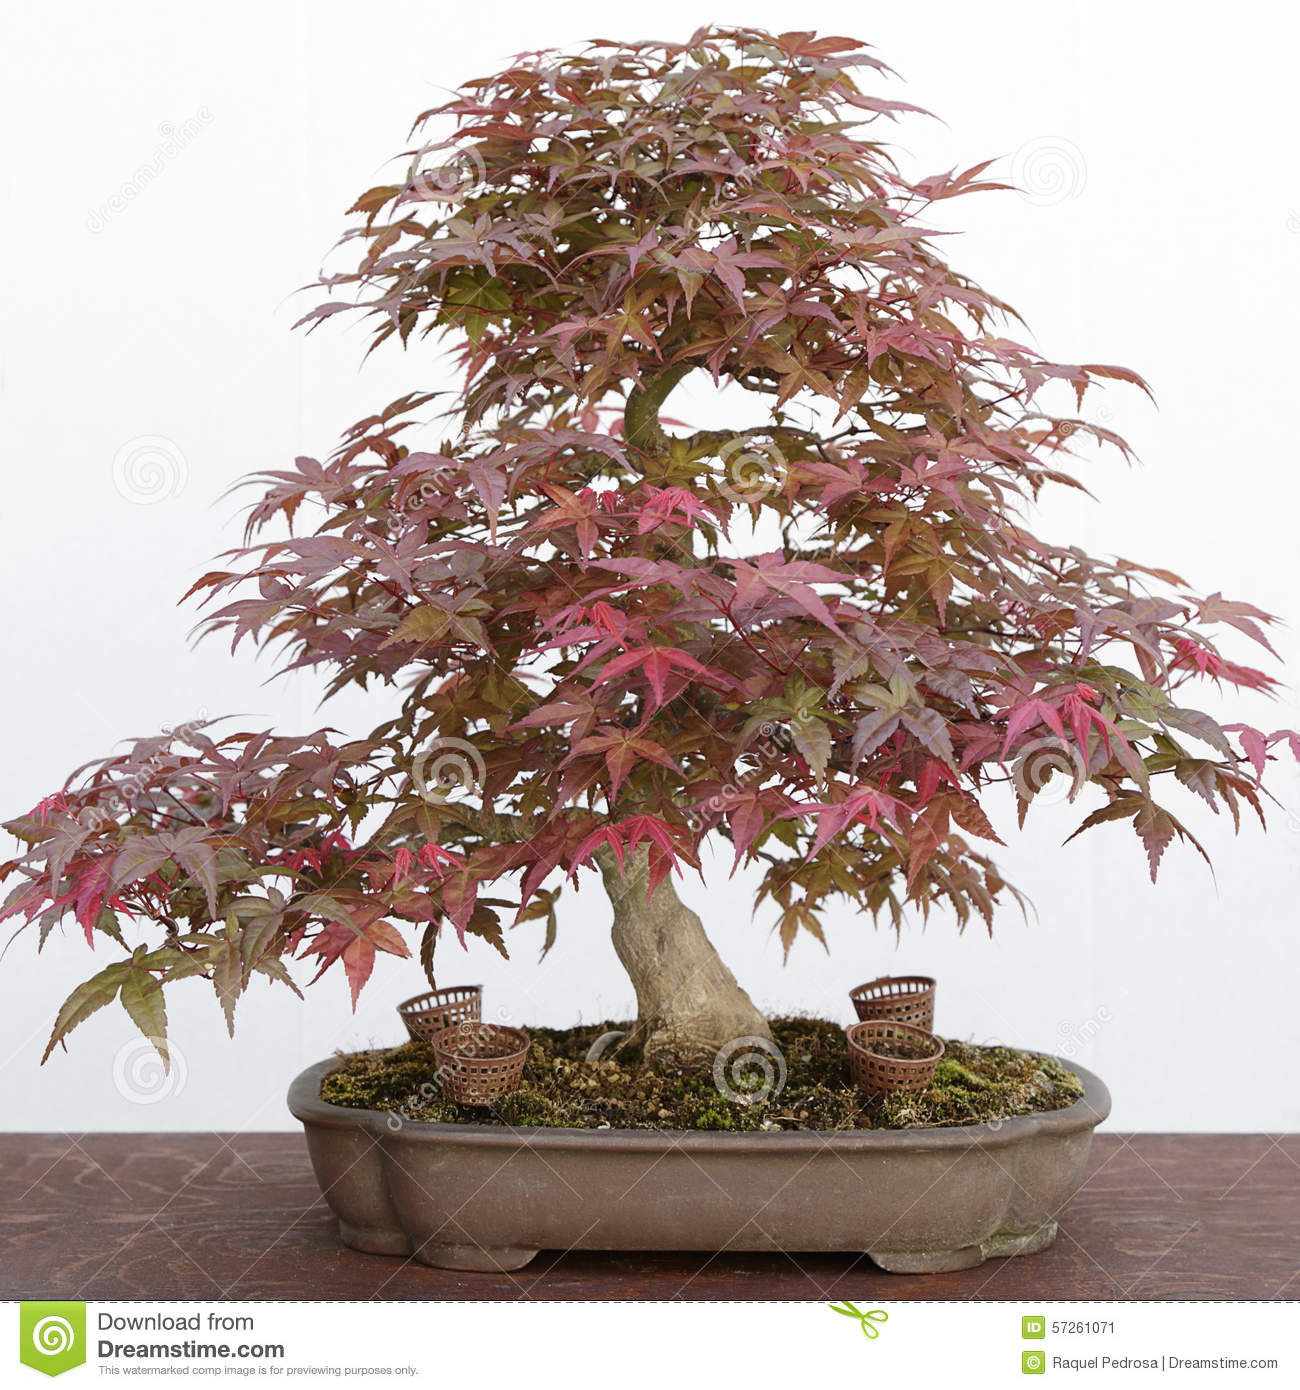 Japanese Maple Acer Palmatum Bonsai Stock Image Image Of Bonsai